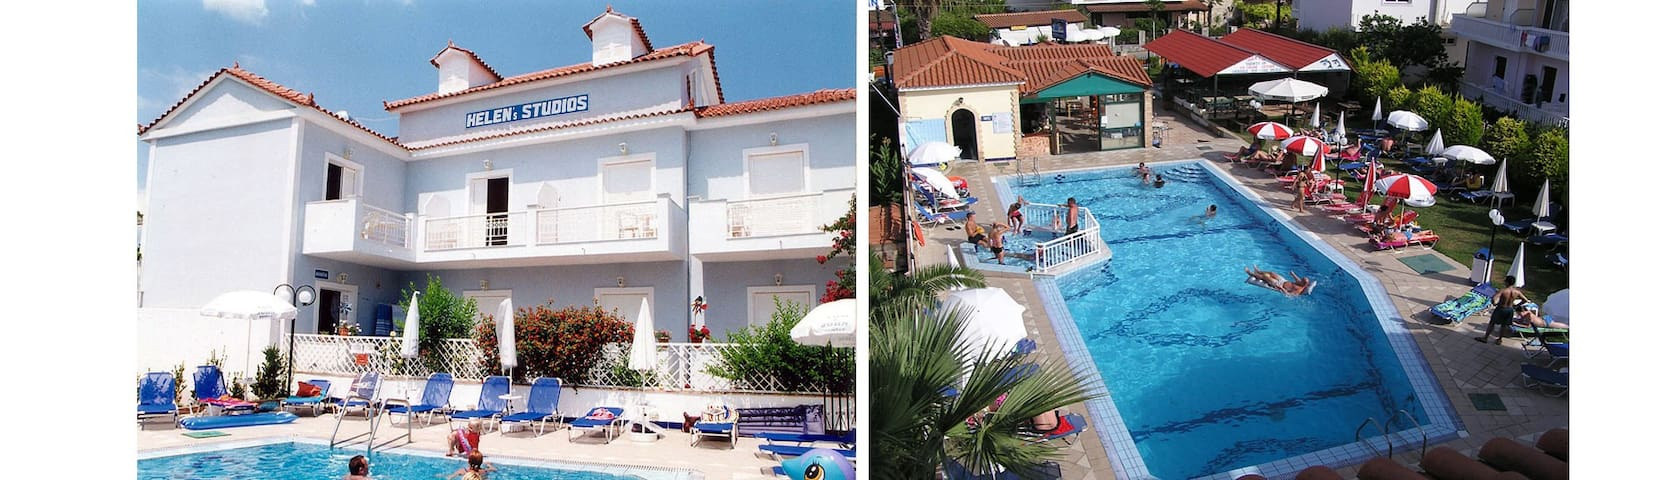 Studios Helen 50m from the sea In Tsilivi Zante